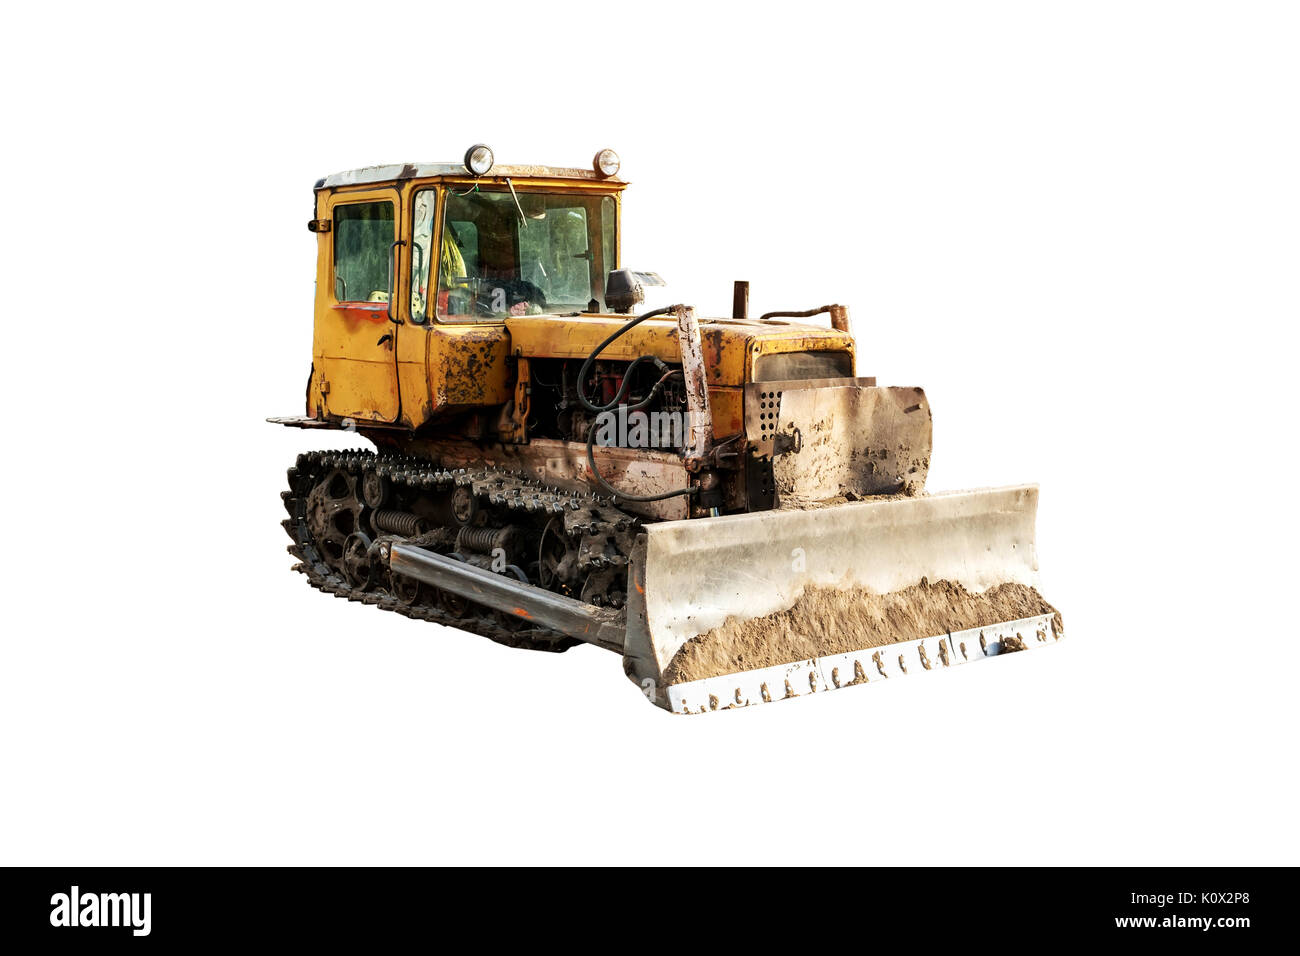 Vintage excavator working on clearing the land isolate on white background. - Stock Image